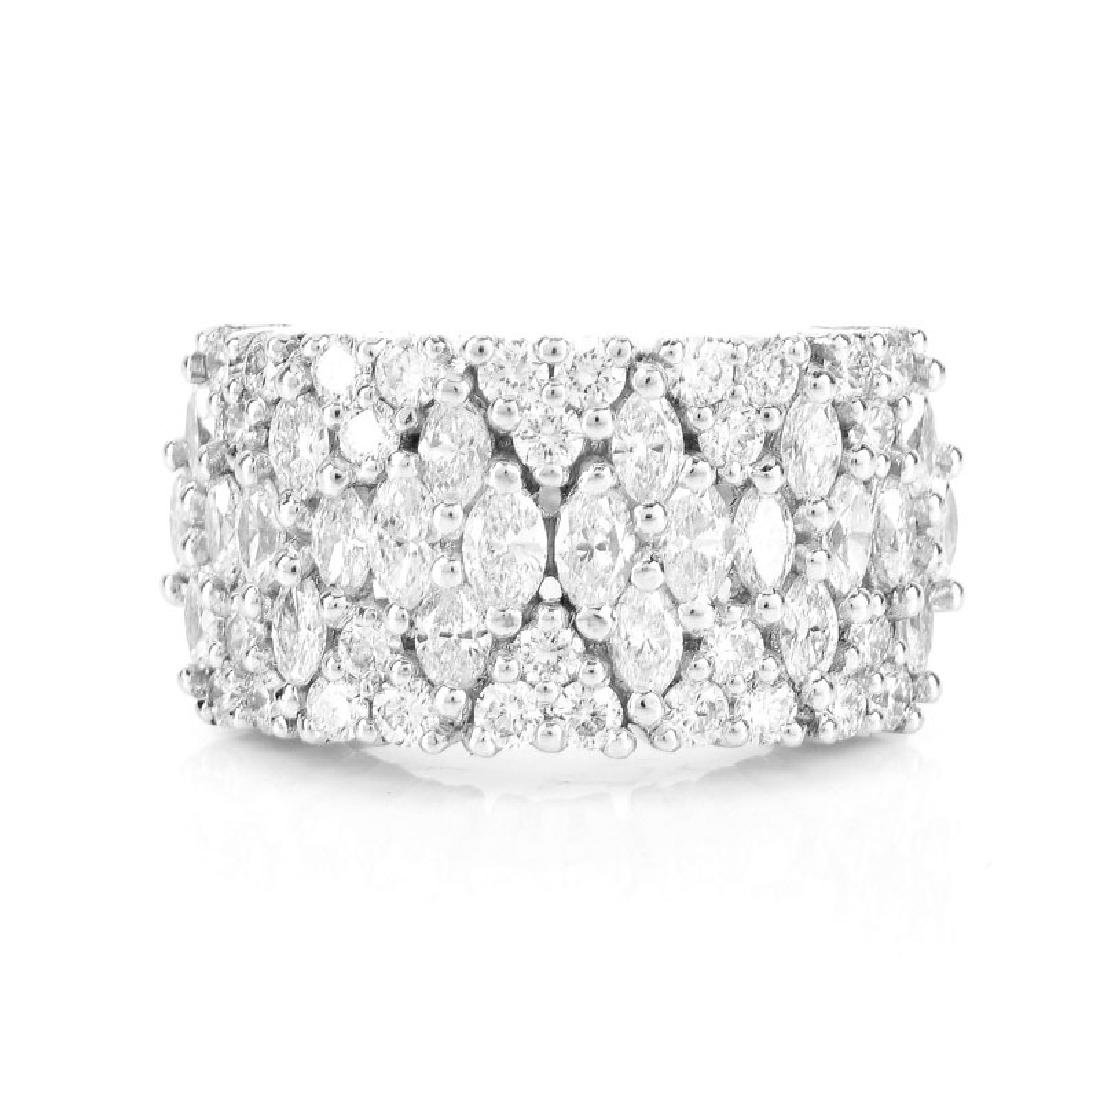 Approx. 2.35 Carat TW Marquise and Round Brilliant Cut - 2